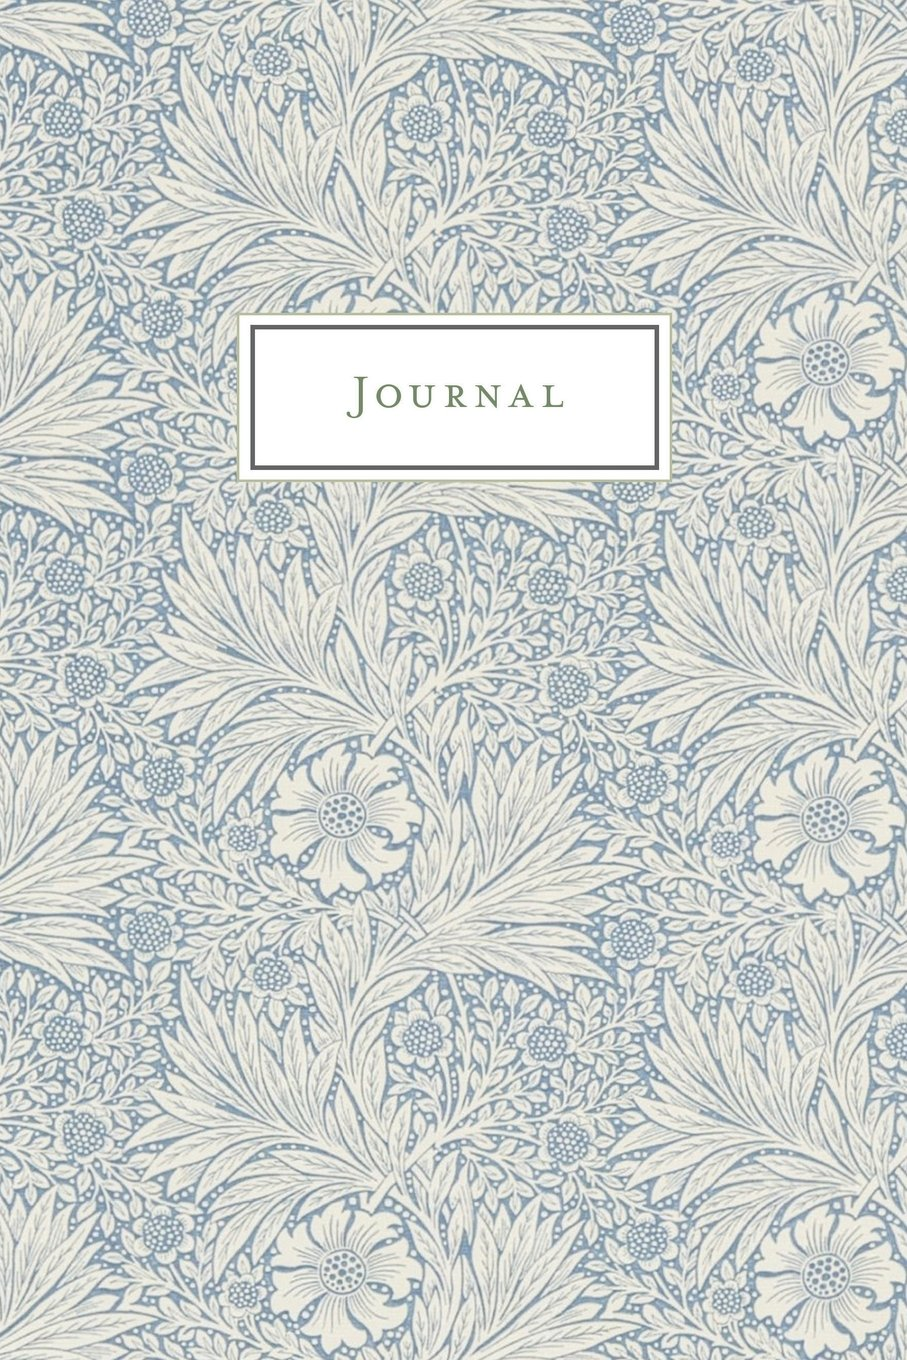 Journal: Vintage Floral Design - Journal, Notebook, Diary /(College Ruled/) /(Inglés/) Pasta blanda – 31 mar 2018 1986863743 NATURE // Plants // Flowers